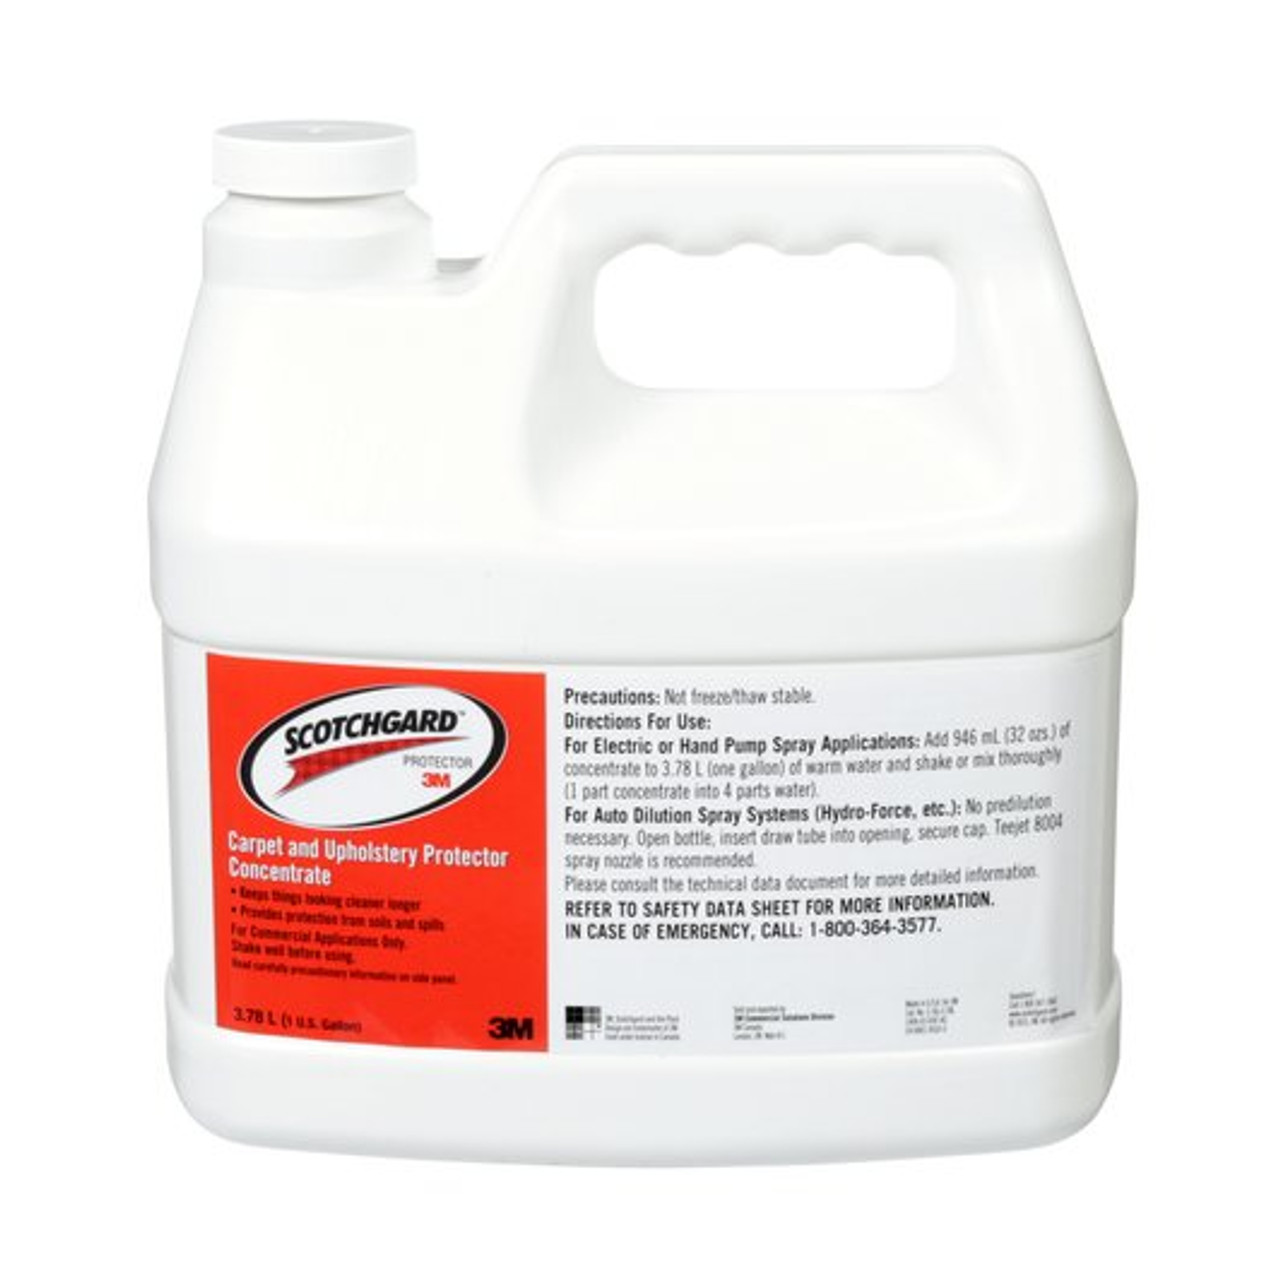 3m Scotchgard Carpet And Upholstery Protector